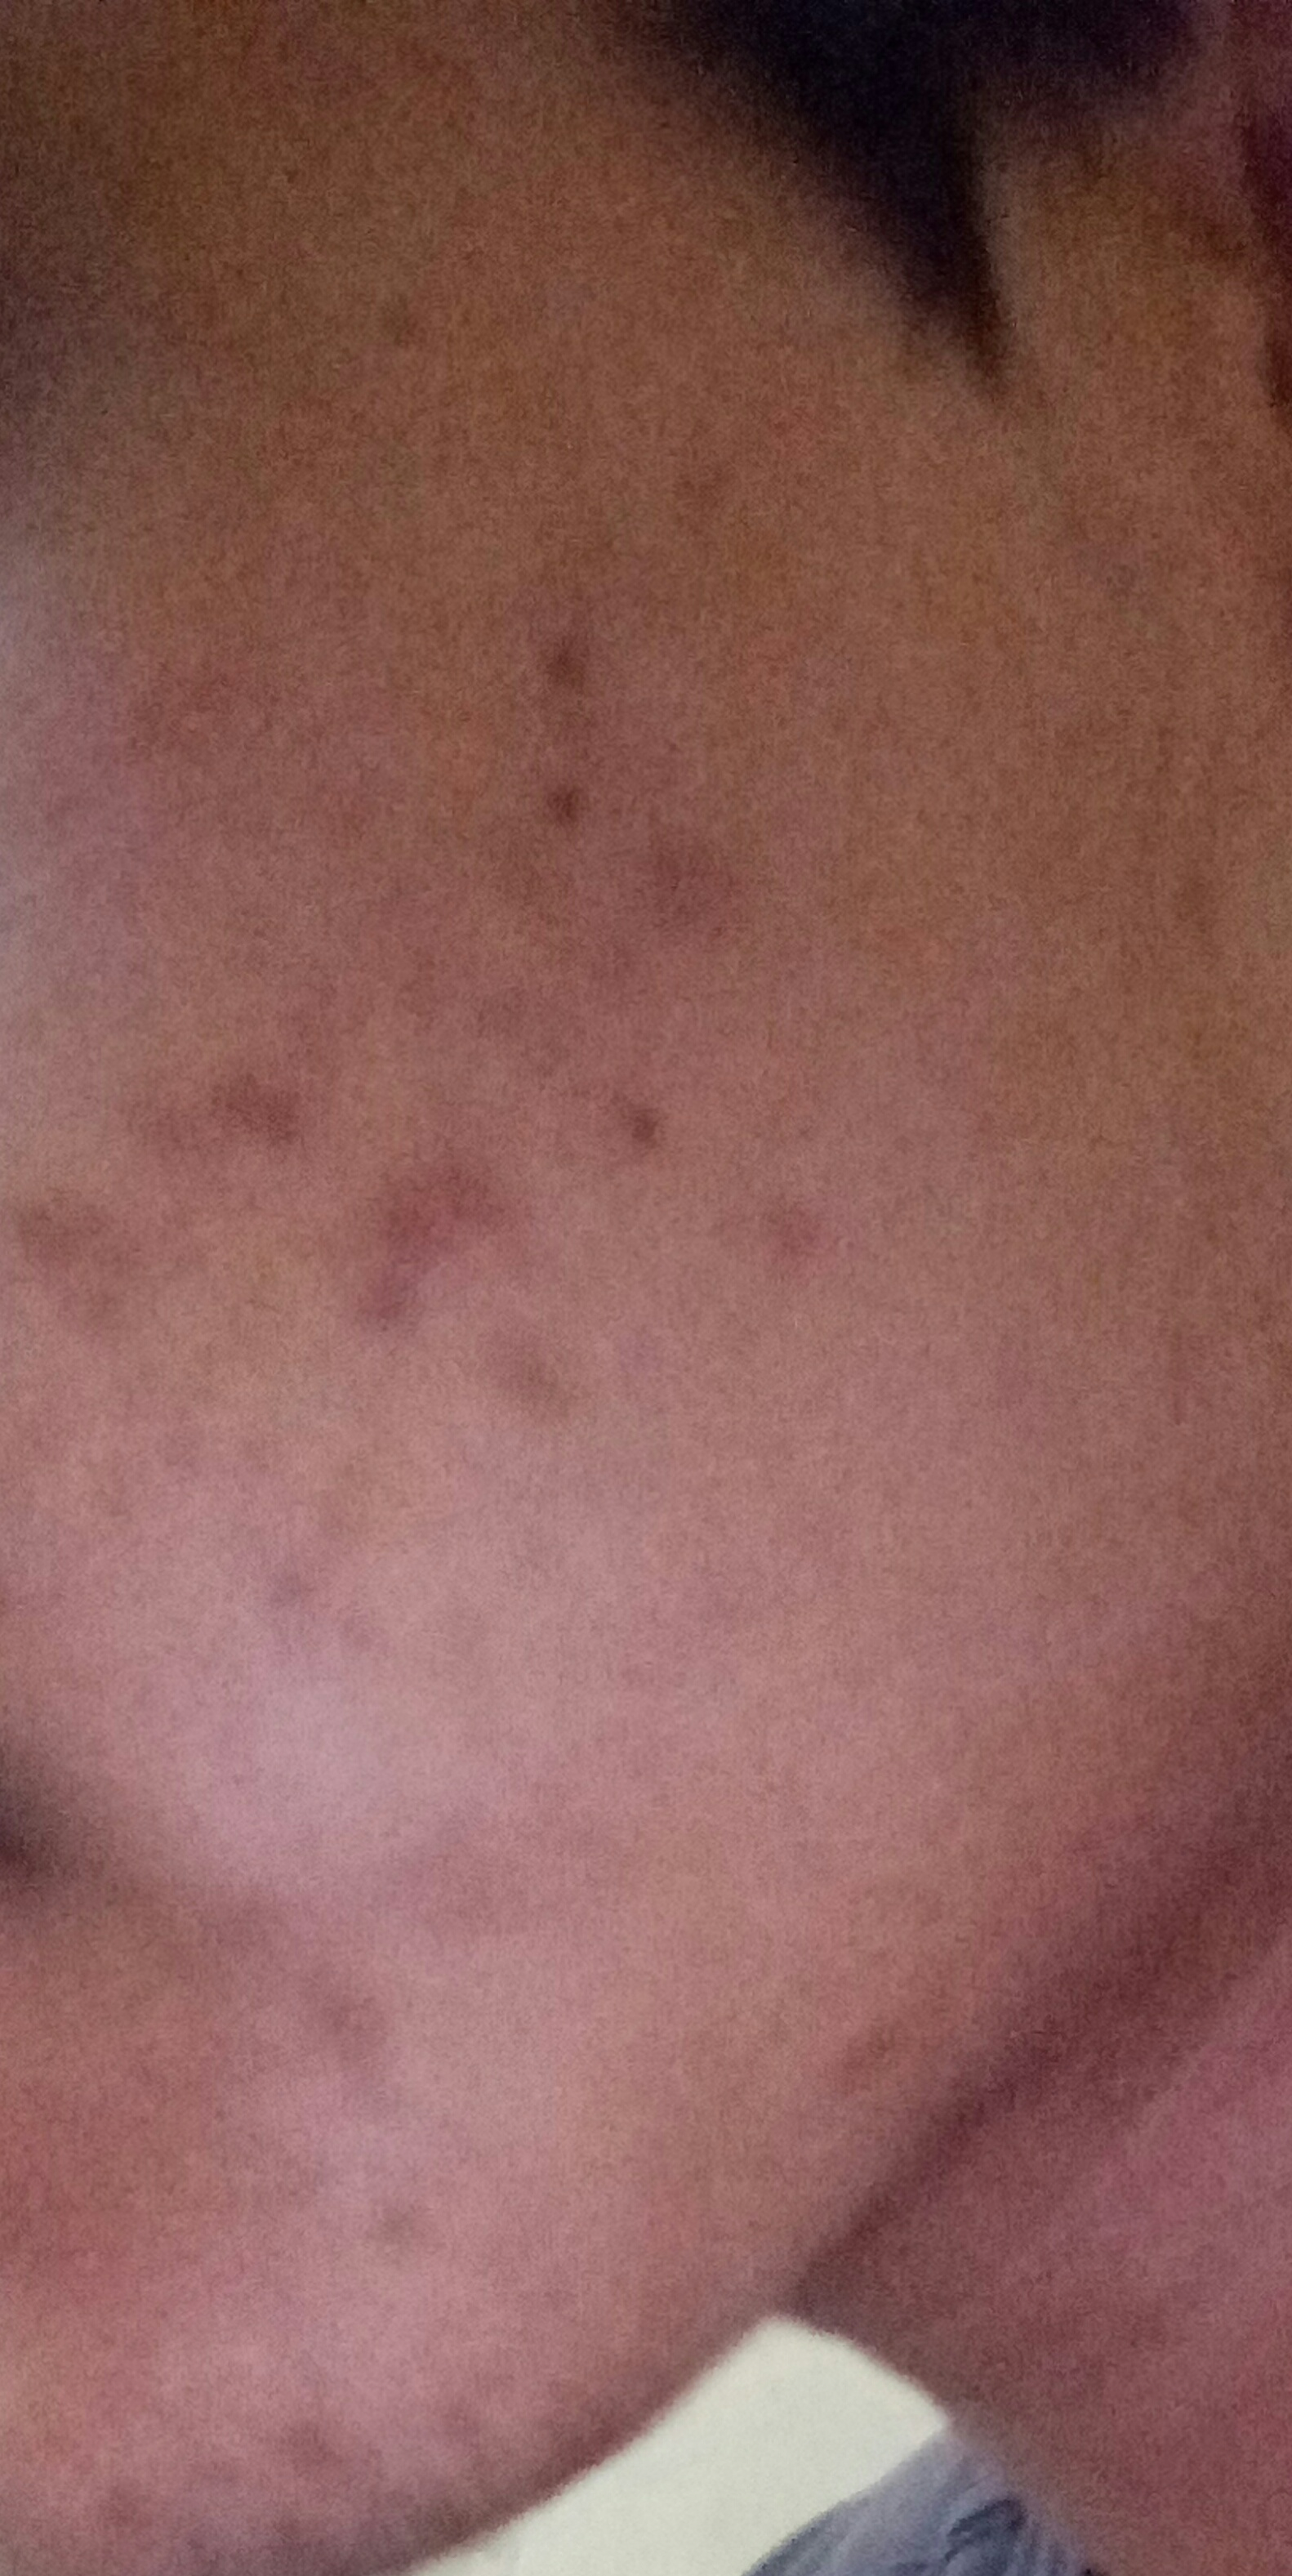 These dark brown spots have been on my face for about 15 days. How much  more time will they take to fade away? Please help? - Hyperpigmentation -  red/dark marks - Acne.org